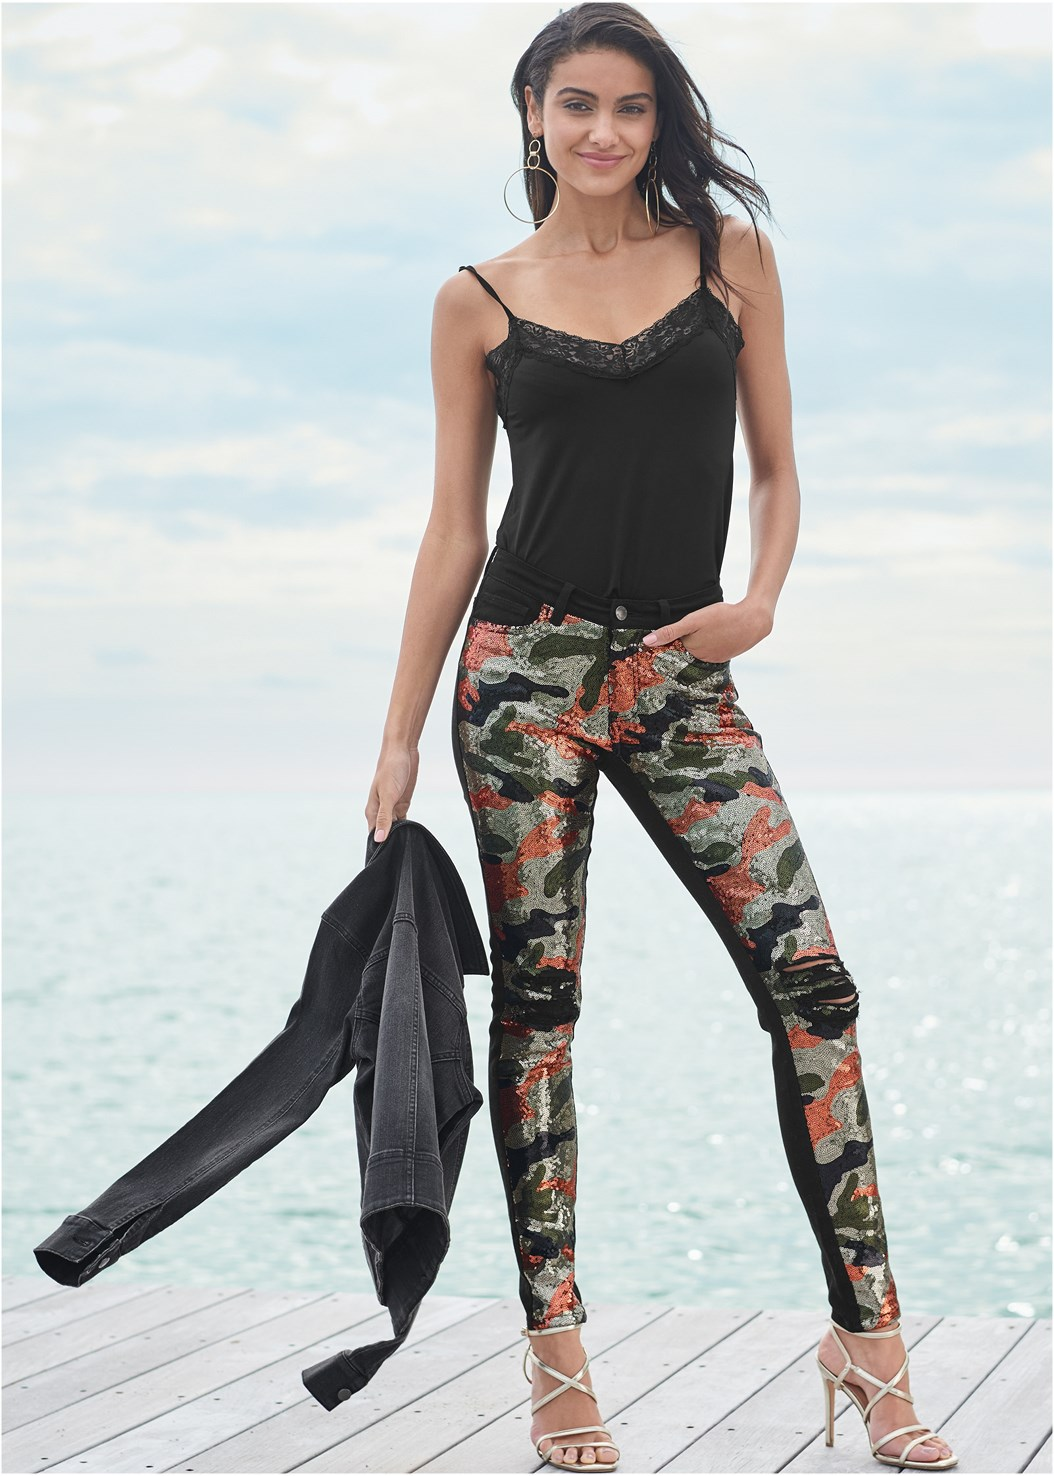 Camo Sequin Jeans,Lace Cami,Jean Jacket,Multi Strap Ankle Wrap Heel,High Heel Strappy Sandals,Hoop Earrings